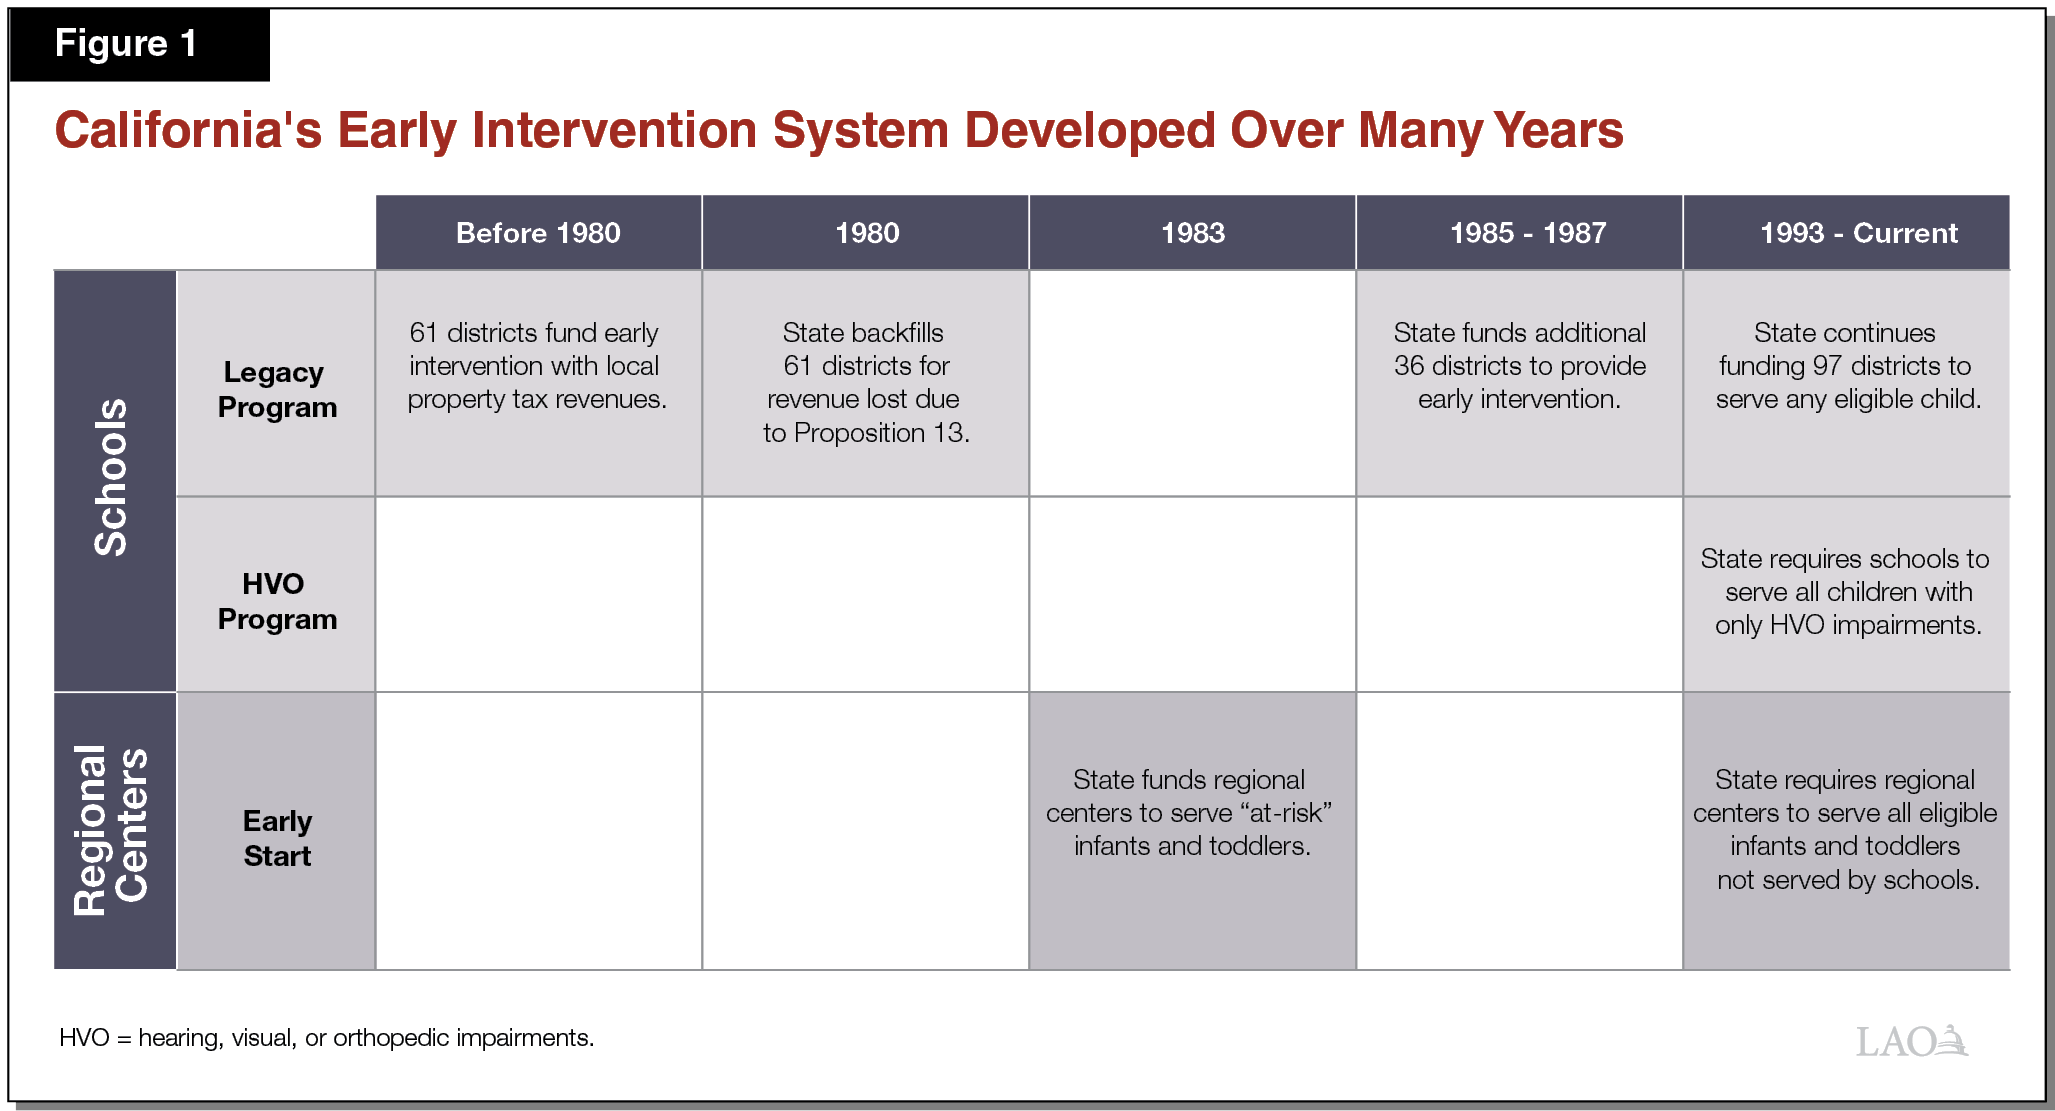 Figure 1 - California's Early Intervention System Developed Over Many Years